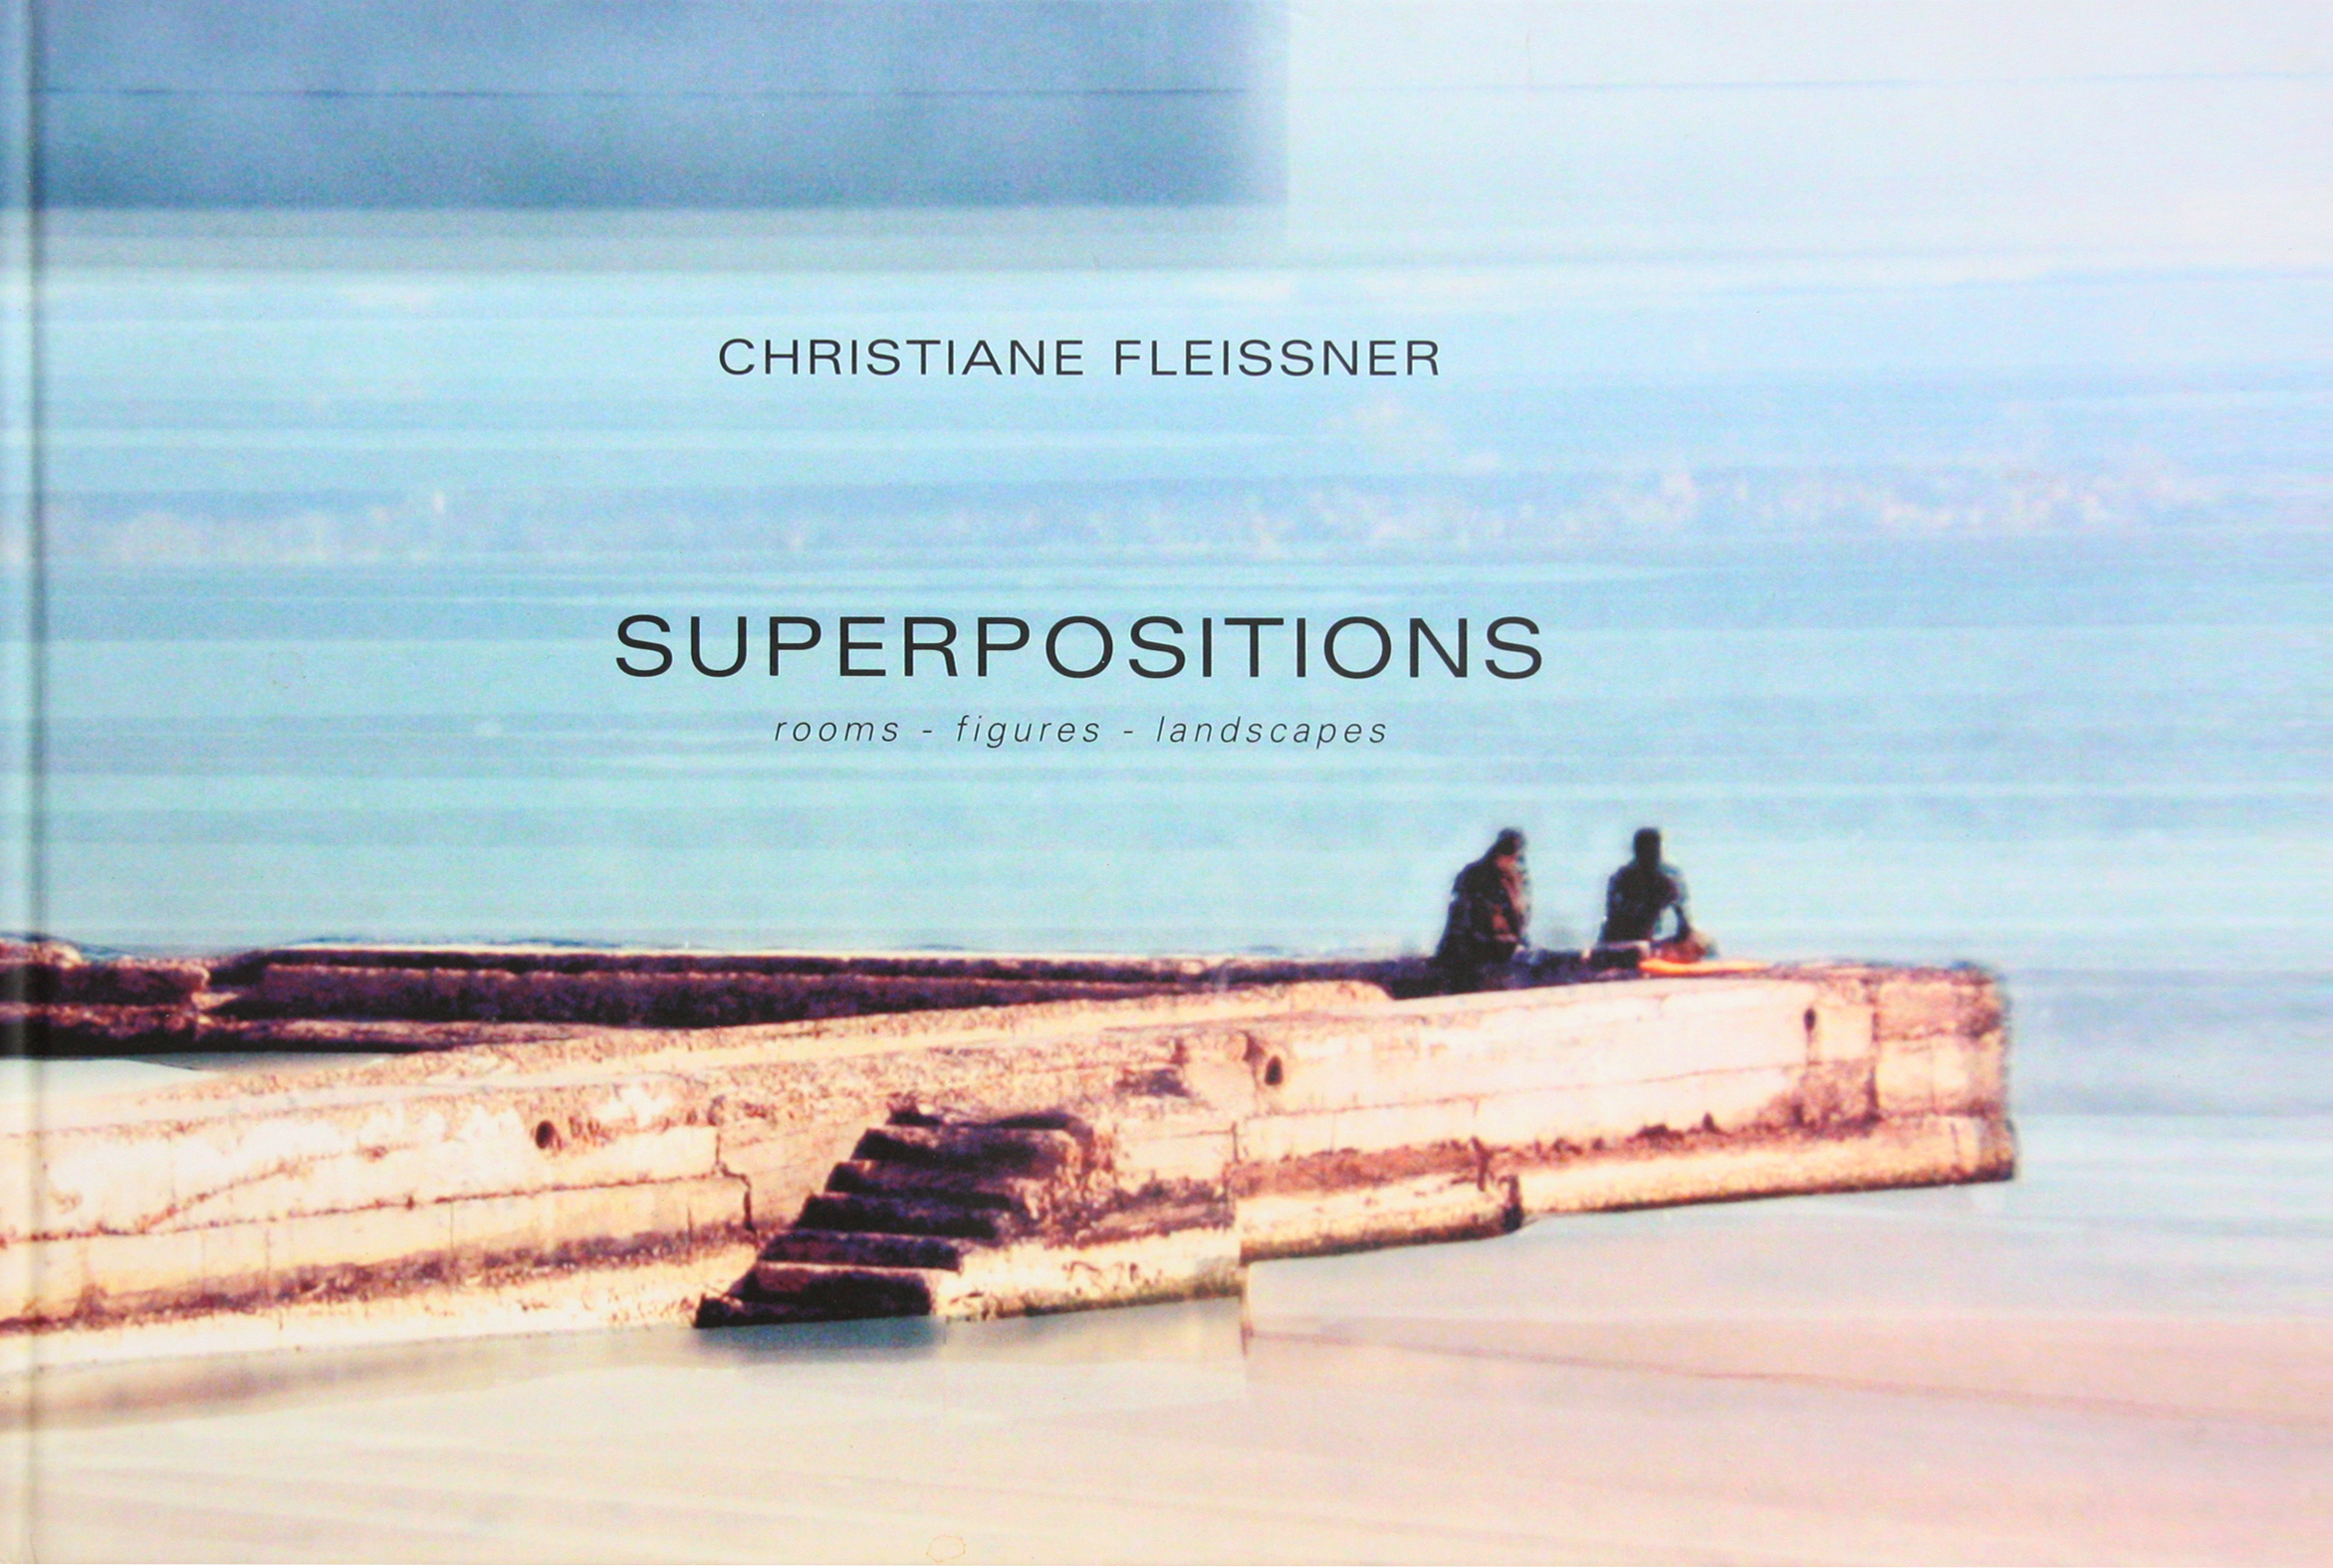 Christiane Fleissner, Superpositions, rooms – figures – landscapes, 2014